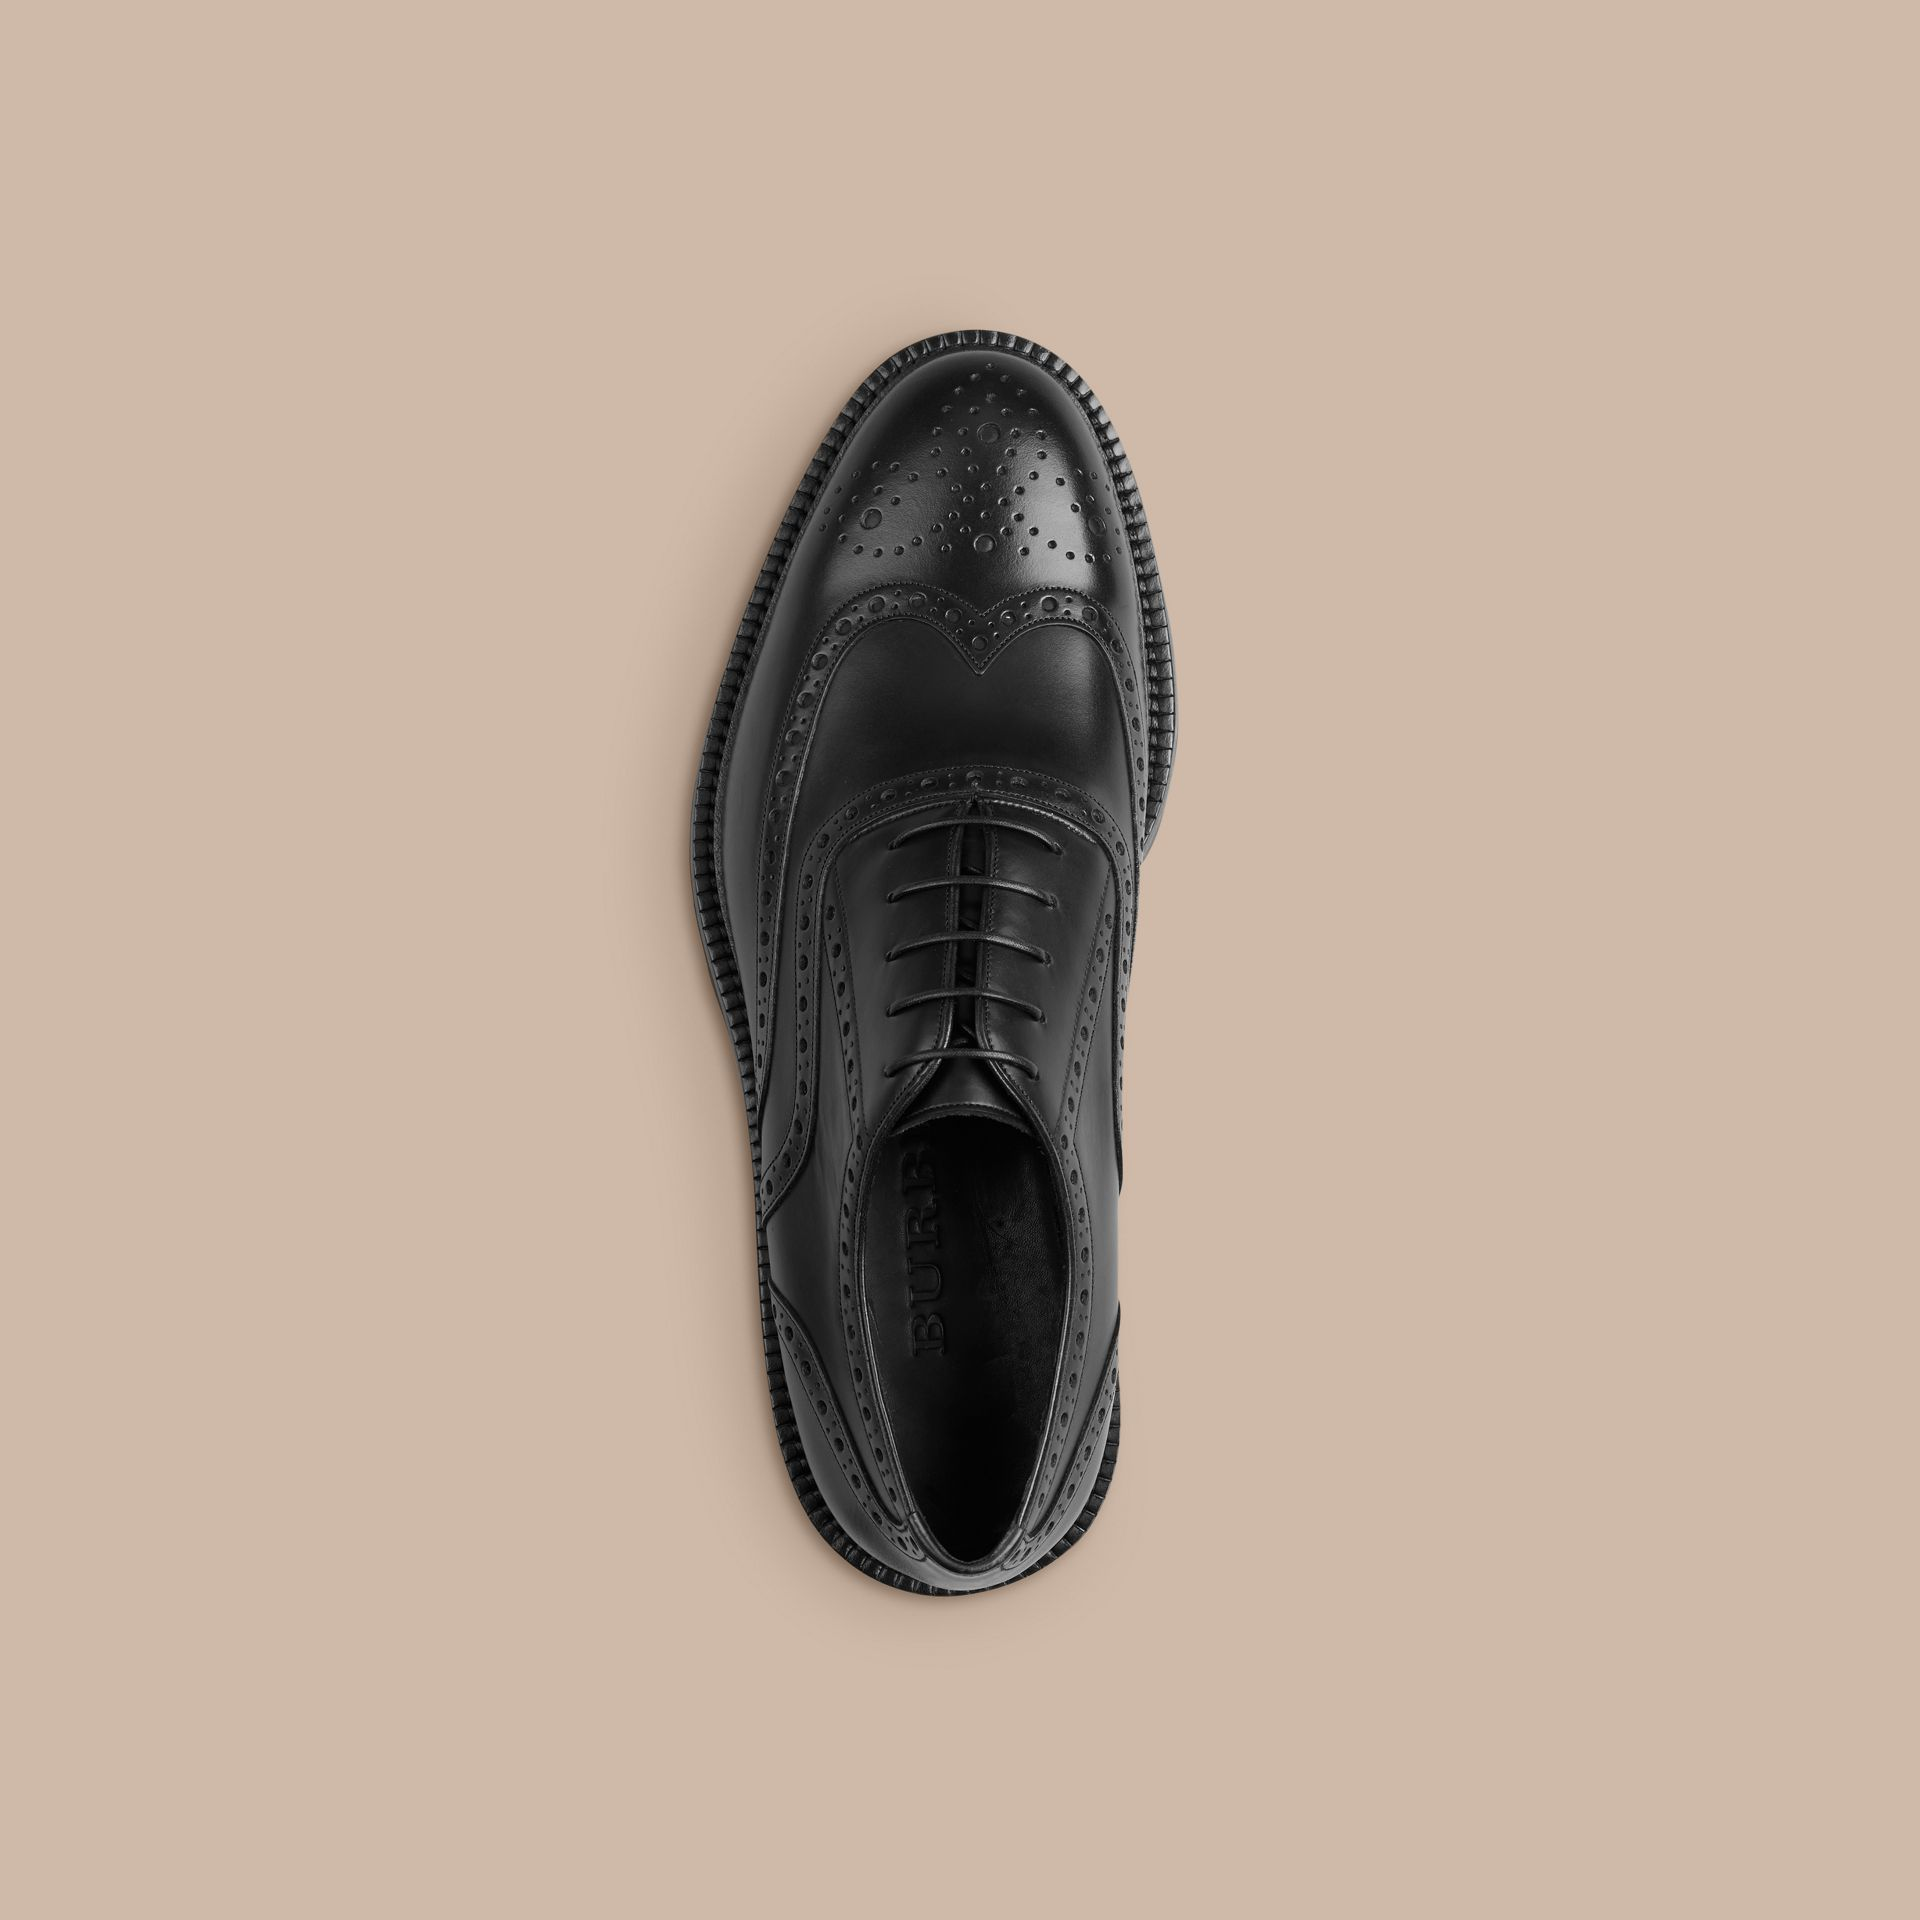 Black Leather Wingtip Brogues With Rubber Sole Black - gallery image 3